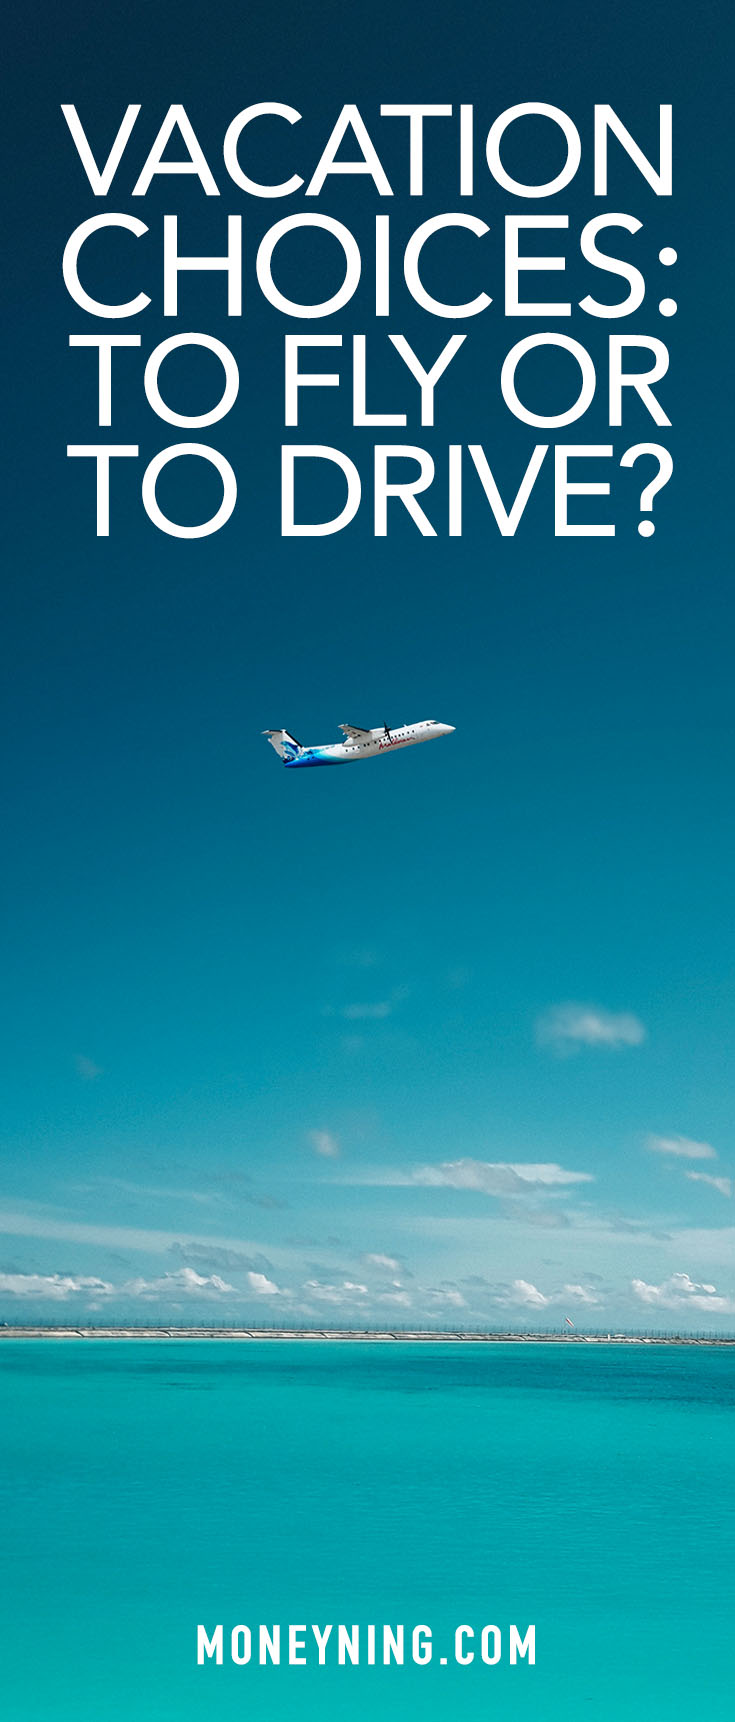 fly or drive